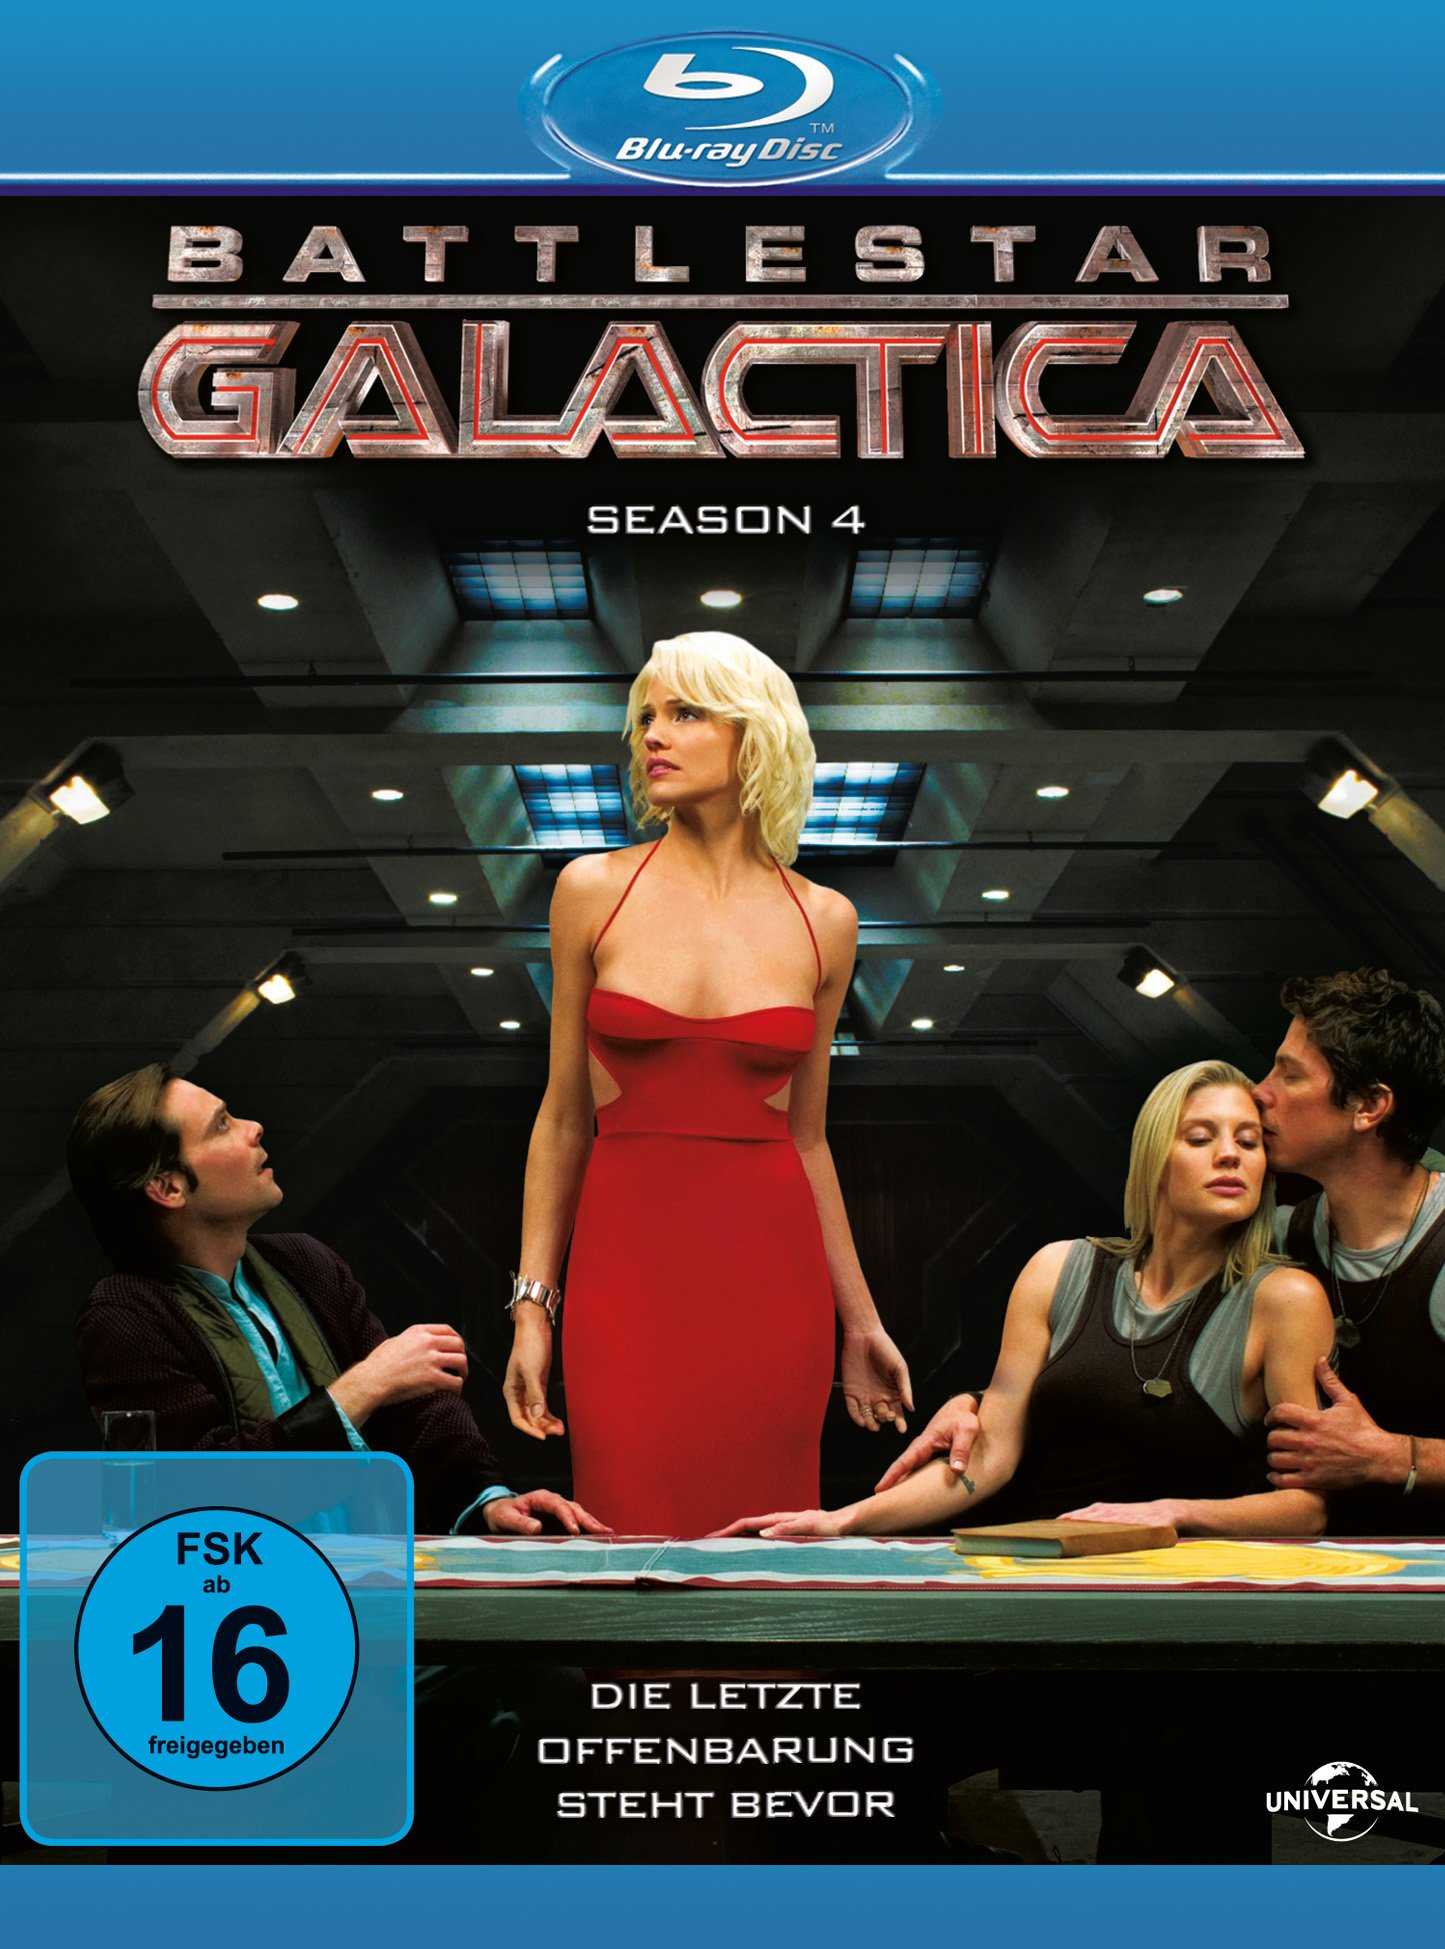 Battlestar Galactica - Season 4 by